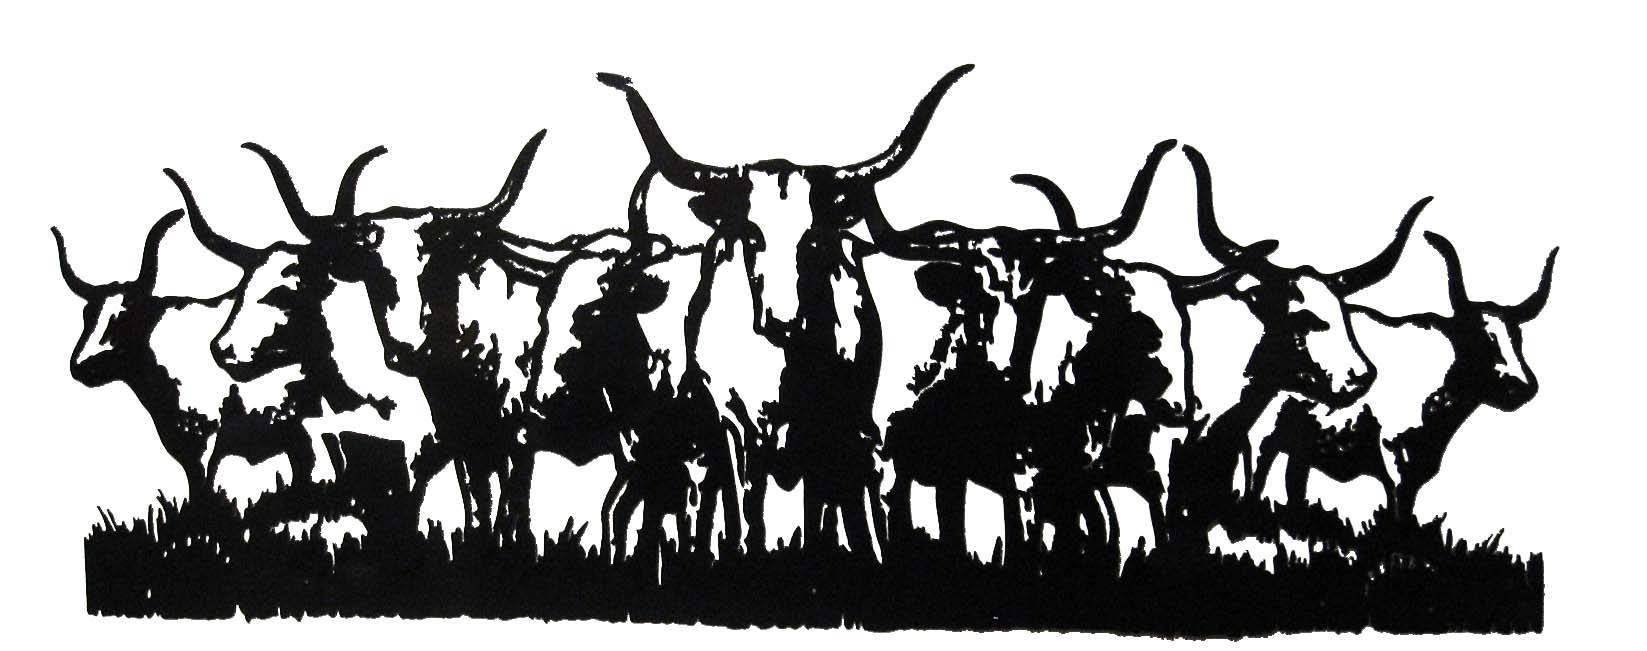 Wall Art: Amazing Picture Western Metal Wall Art Southwestern In Most Current Cowboy Metal Wall Art (View 14 of 20)